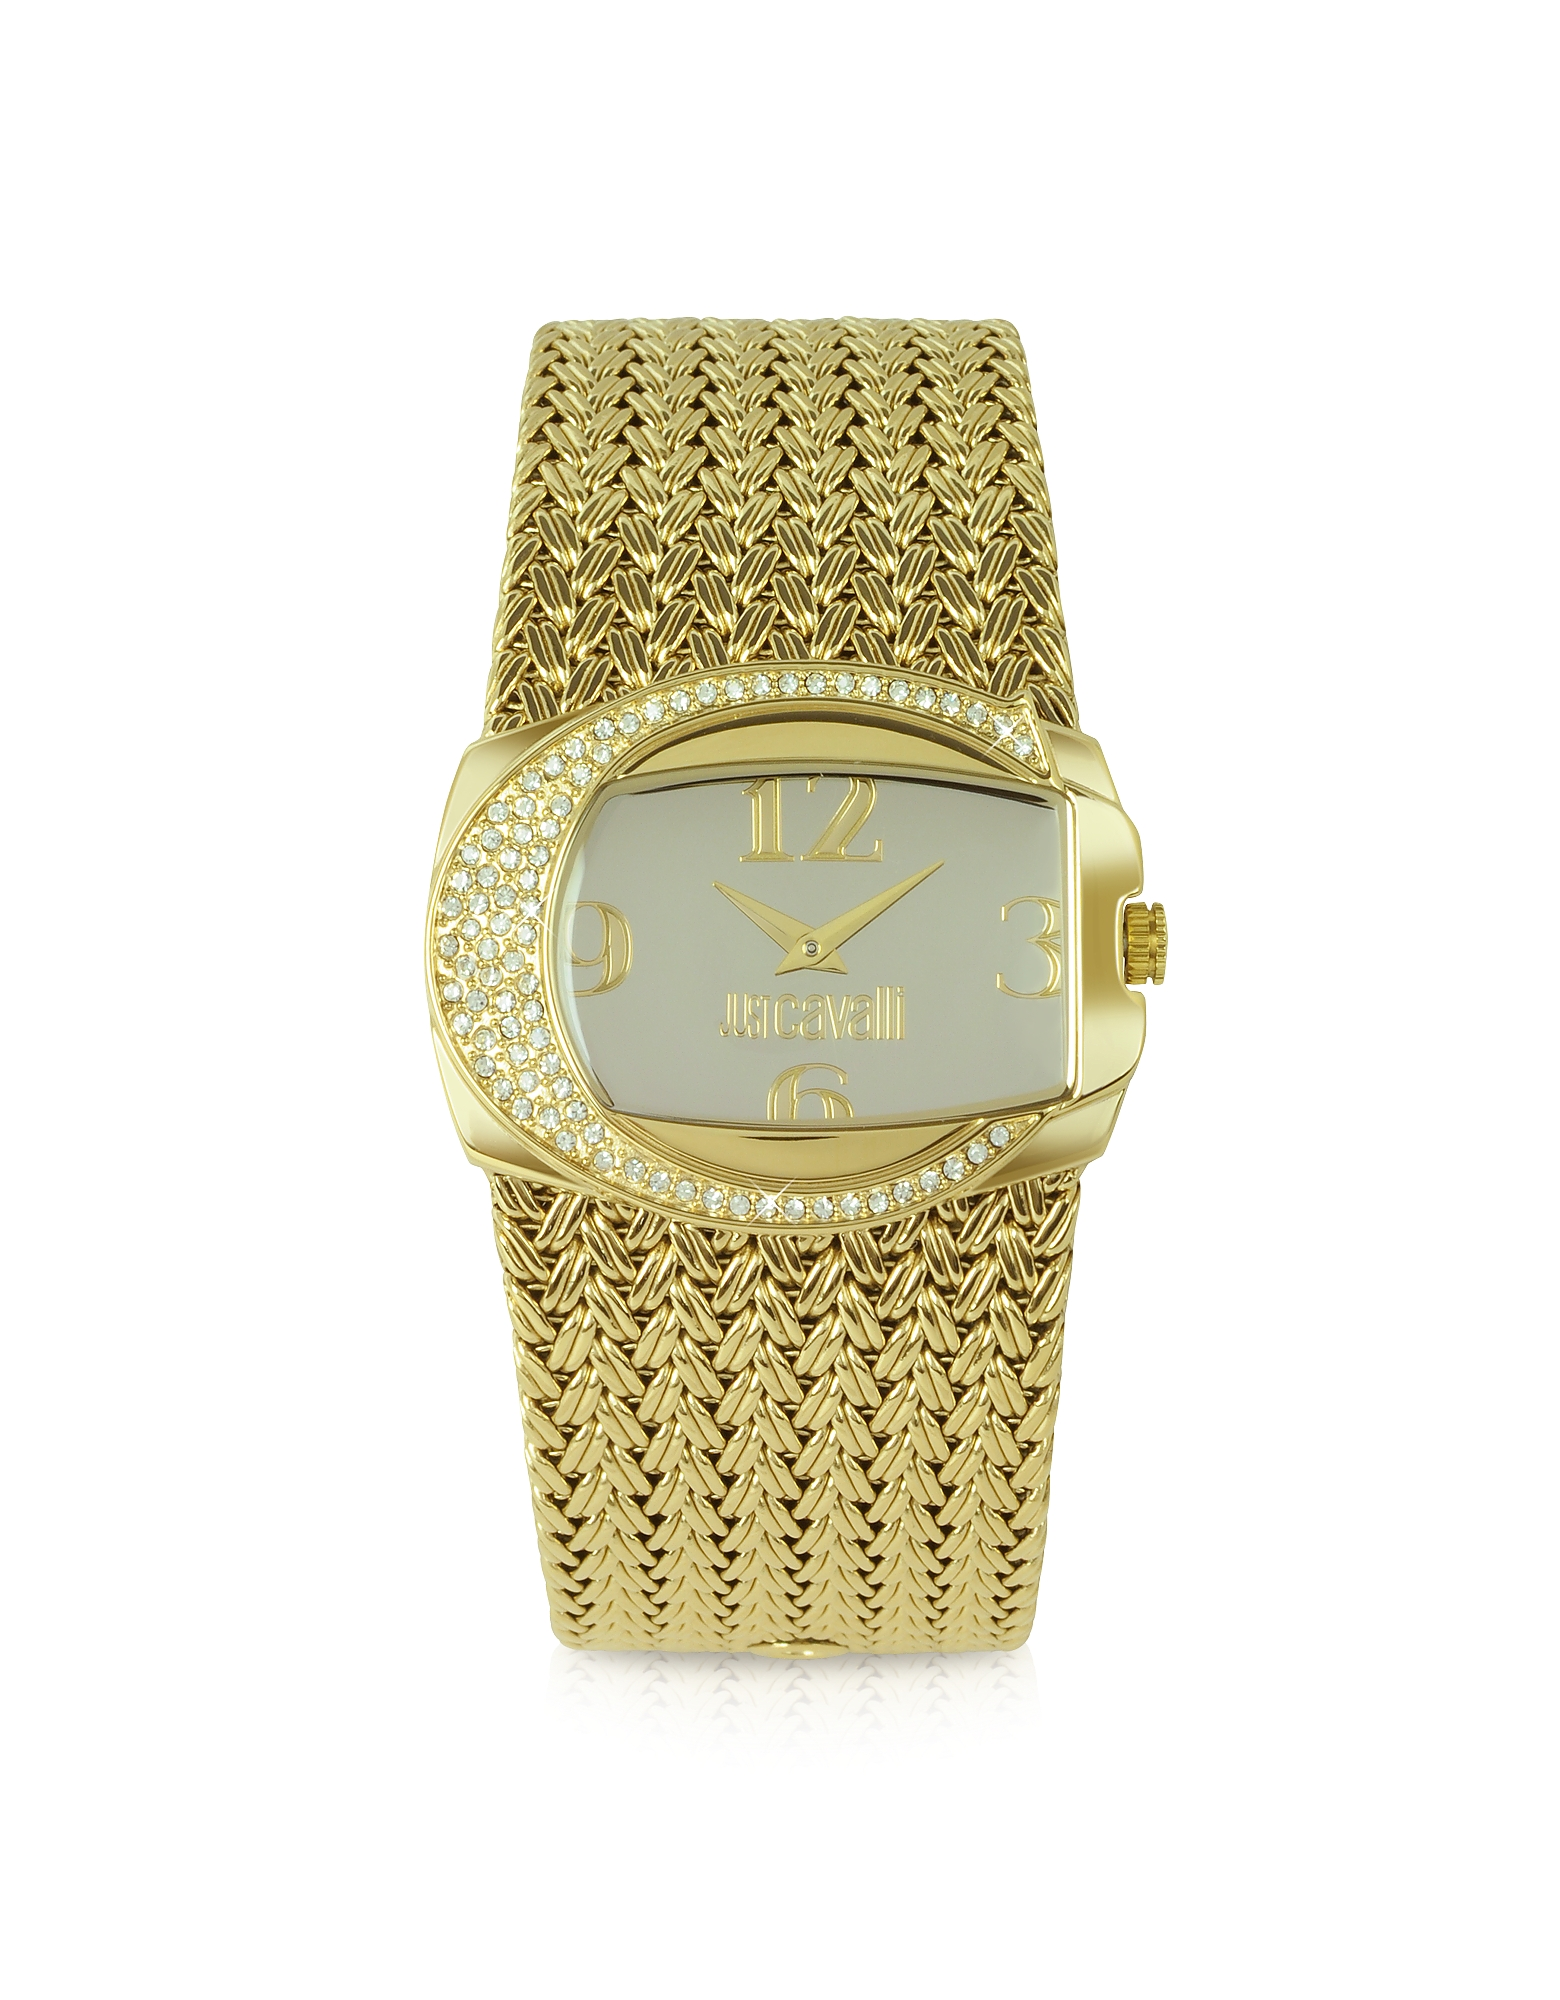 Just Cavalli Women's Watches, Rich - Golden Weave Bracelet Watch